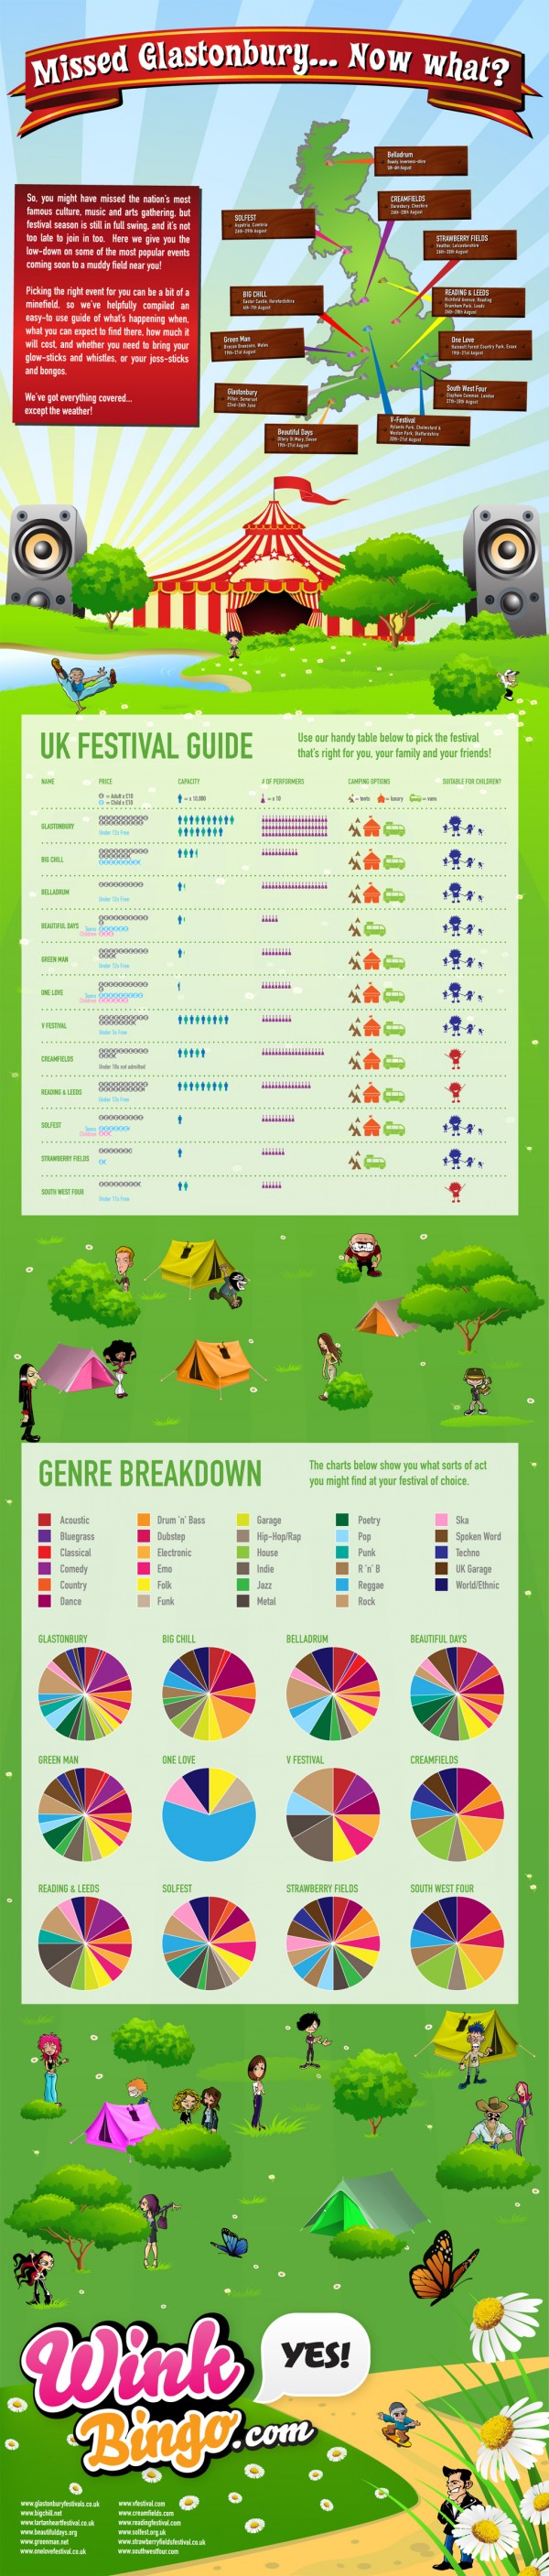 festival-survival-guide-2011-wink-bingo